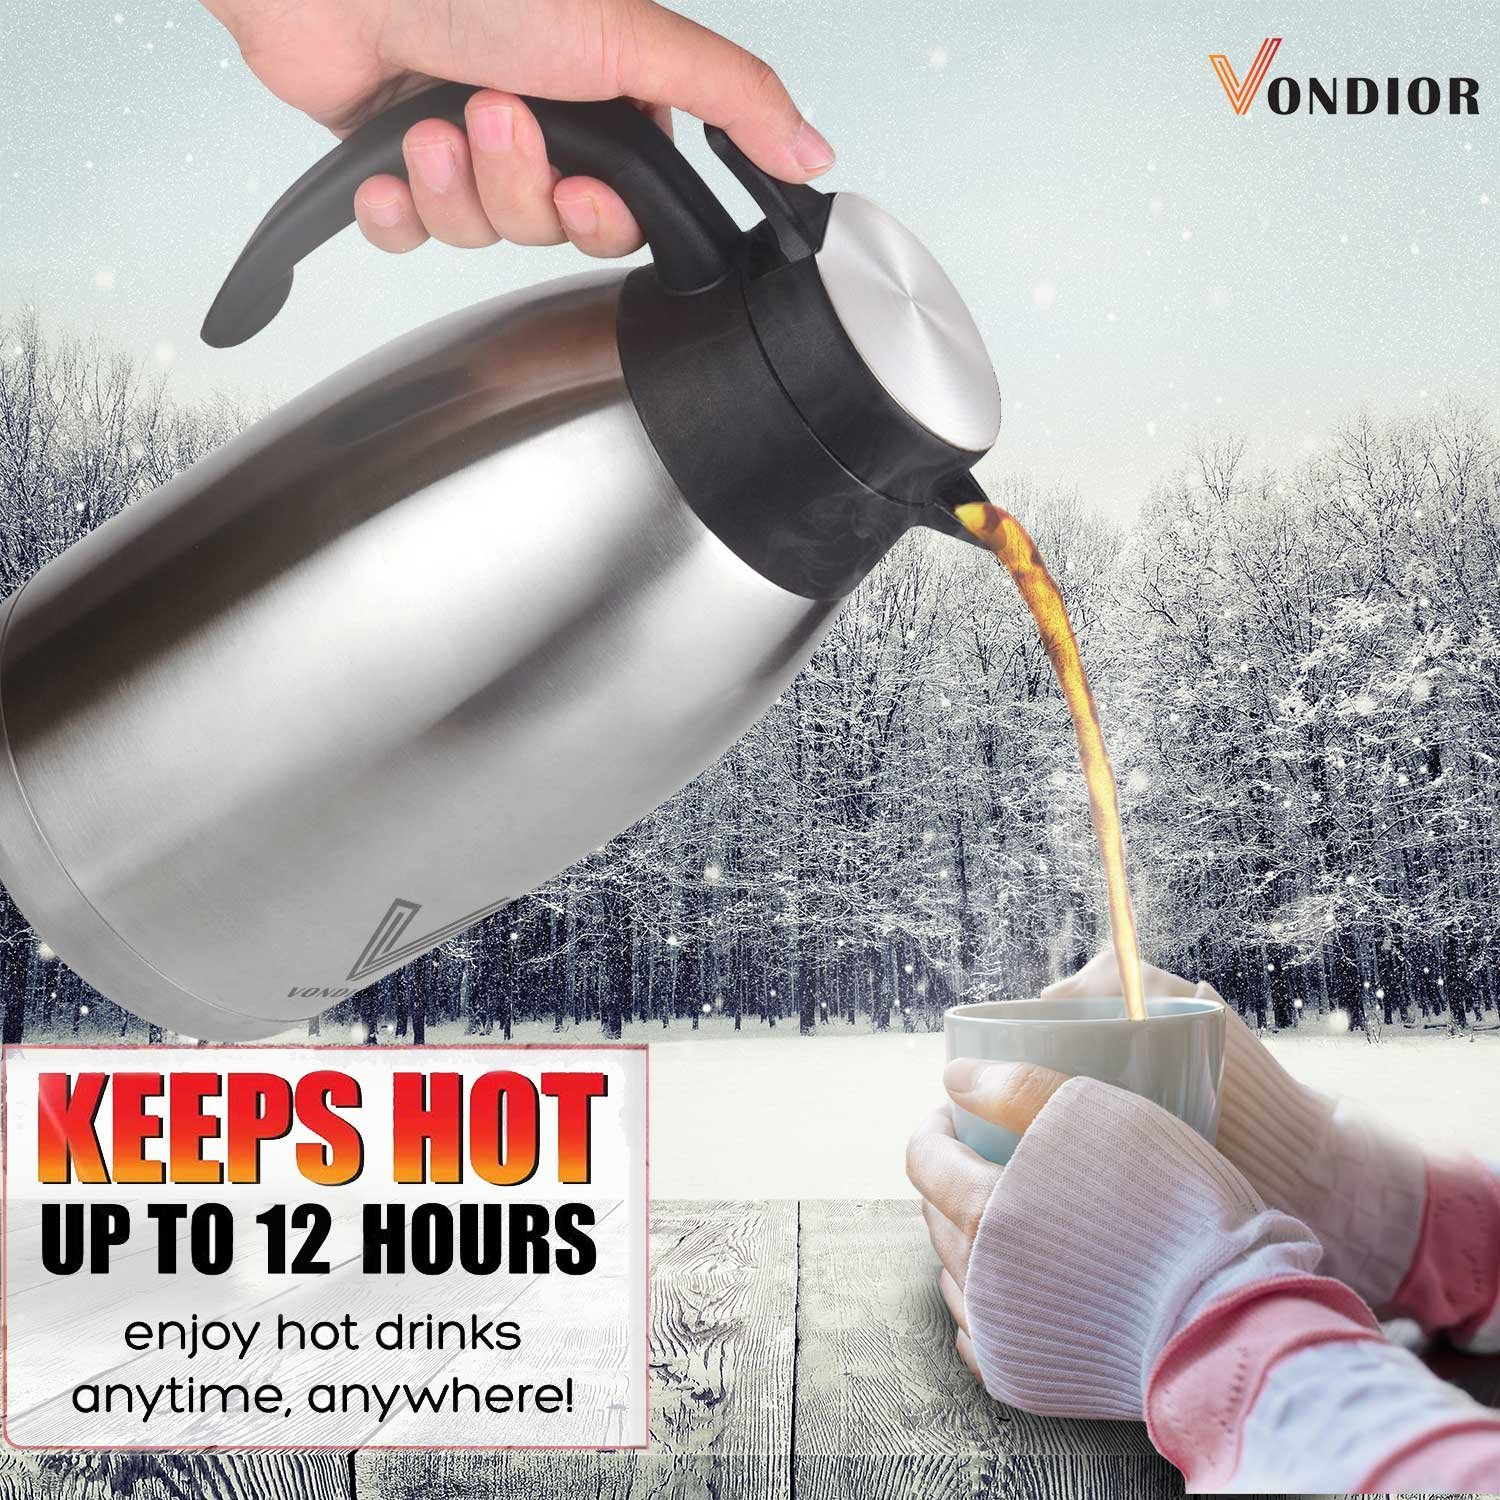 Coffee Thermal Carafe (68 Oz) + Free Brush - Large stainless steel thermos carafes, Keep water hot up to 12 Hours, double walled insulated vacuum flask, Beverage Dispenser By Vondior by Vondior (Image #1)